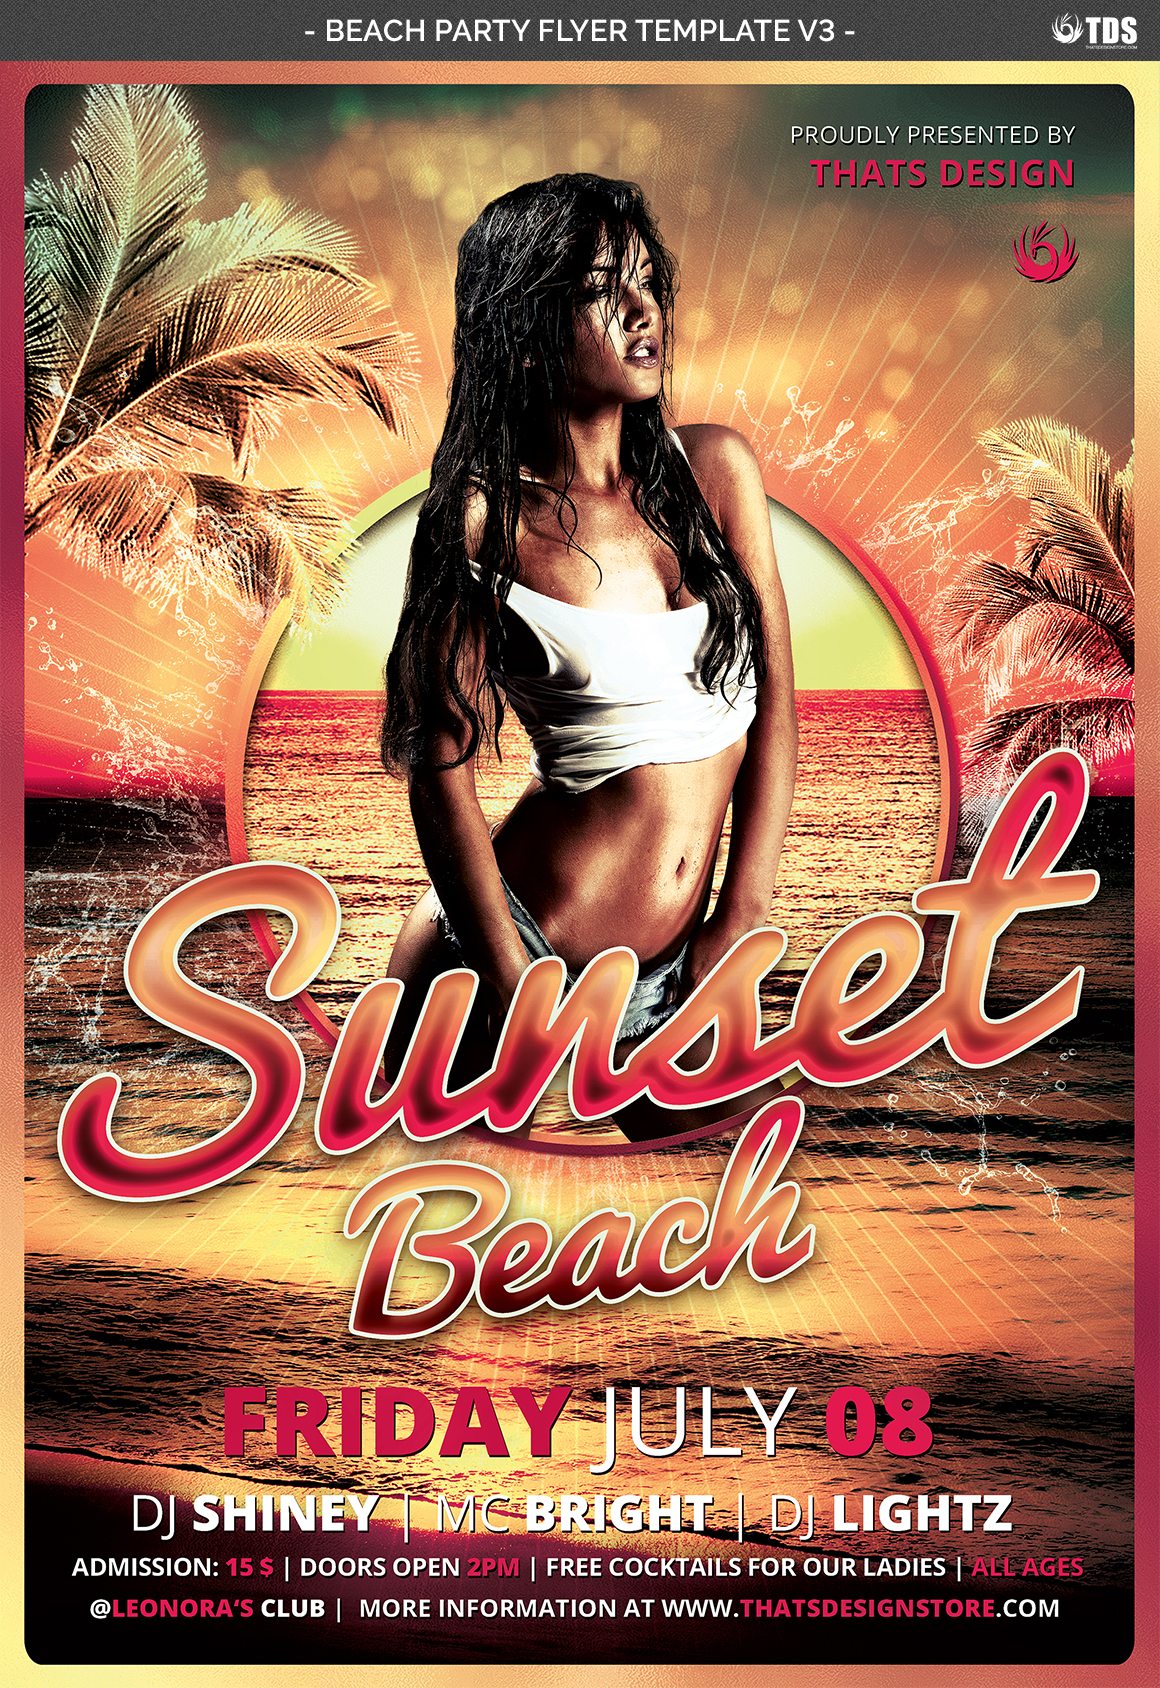 Beach Party Flyer Template V3 example image 4